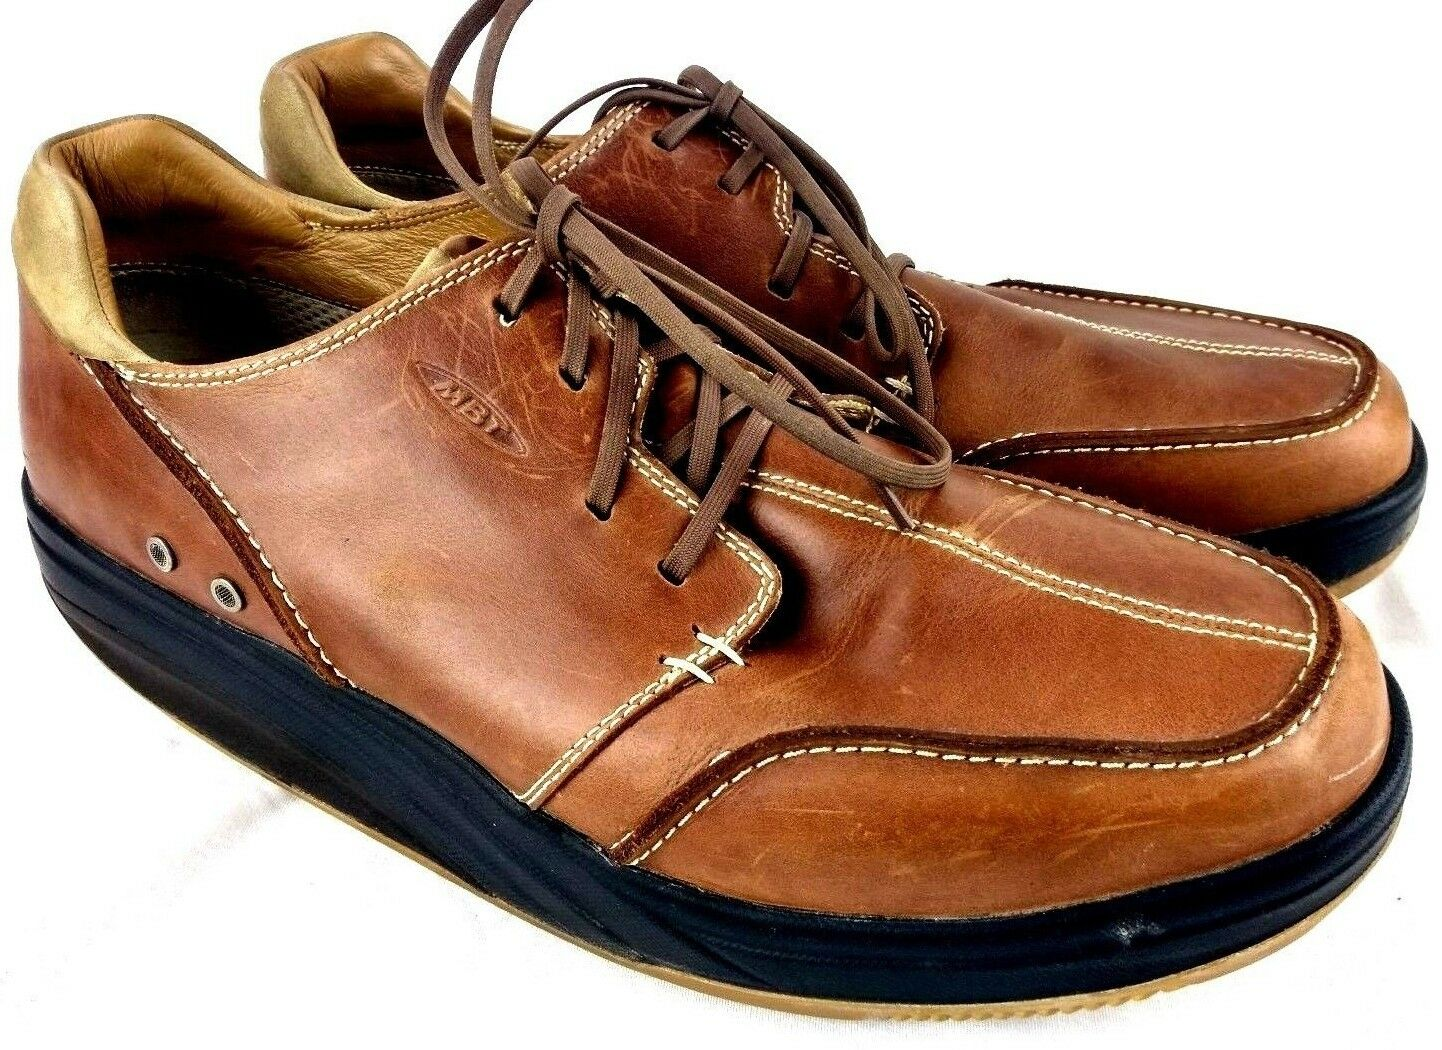 MBT Mens Sz 13.5 Leather Walking Lace Up Brown Moc Toe Oxfords MISSING INSOLES